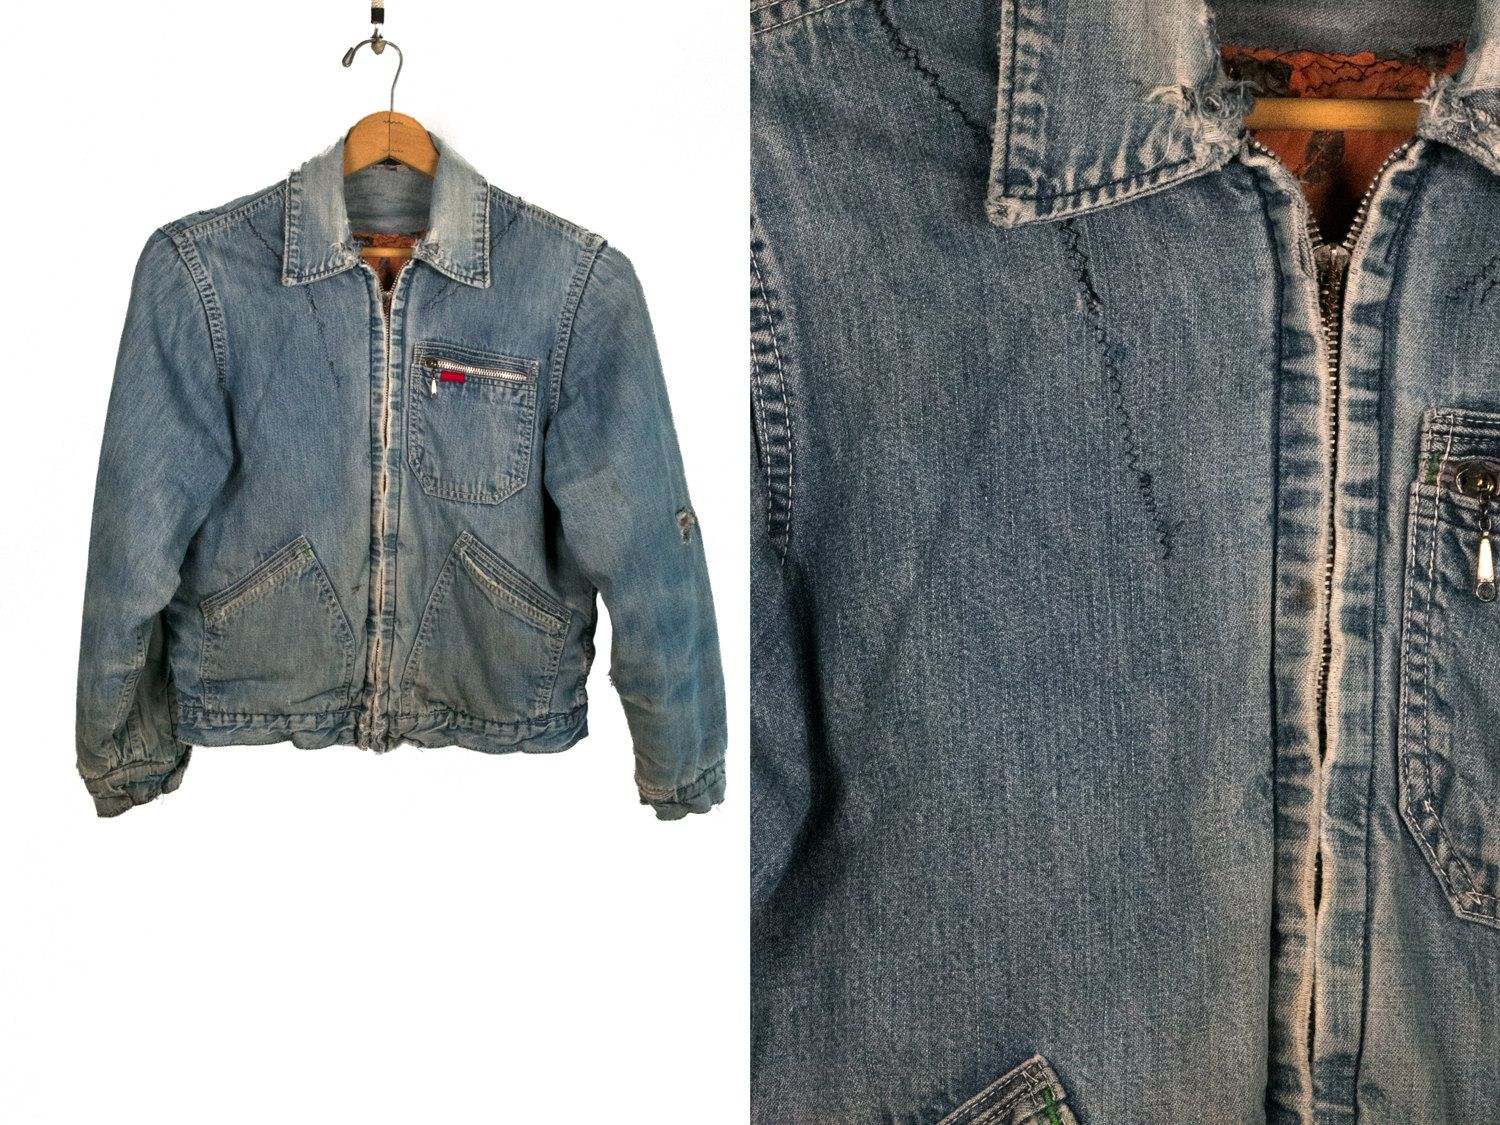 Vintage 1980's Distressed Denim Jacket / Jean Jacket with Hand Mending and Stitching from Machine Americana Unisex Adults Small by thiefislandvintage on Etsy